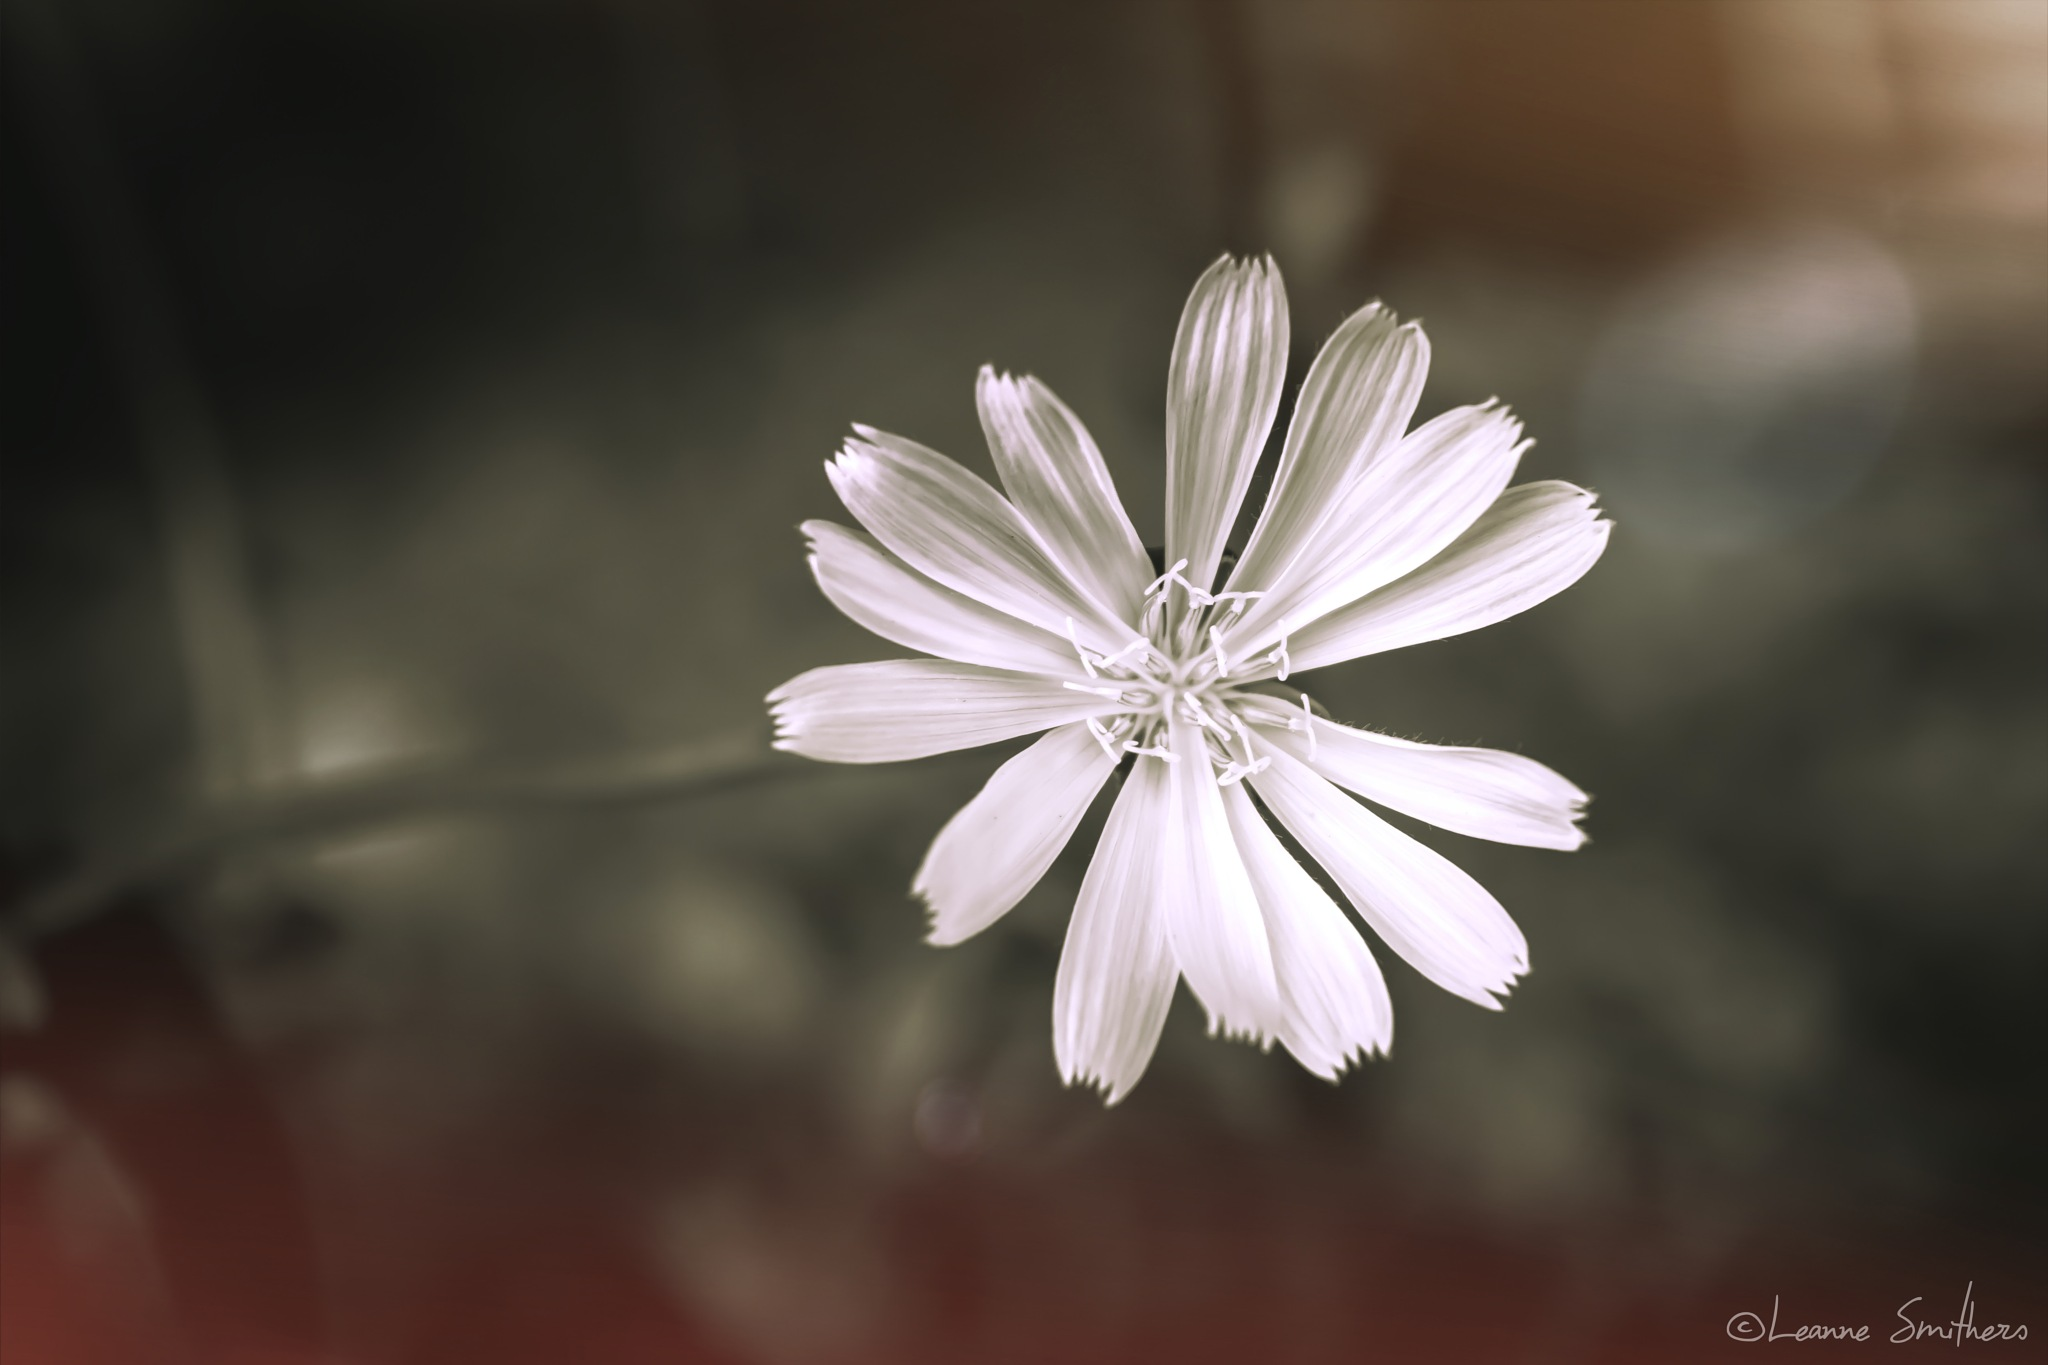 Flower burst by Leanne Smithers